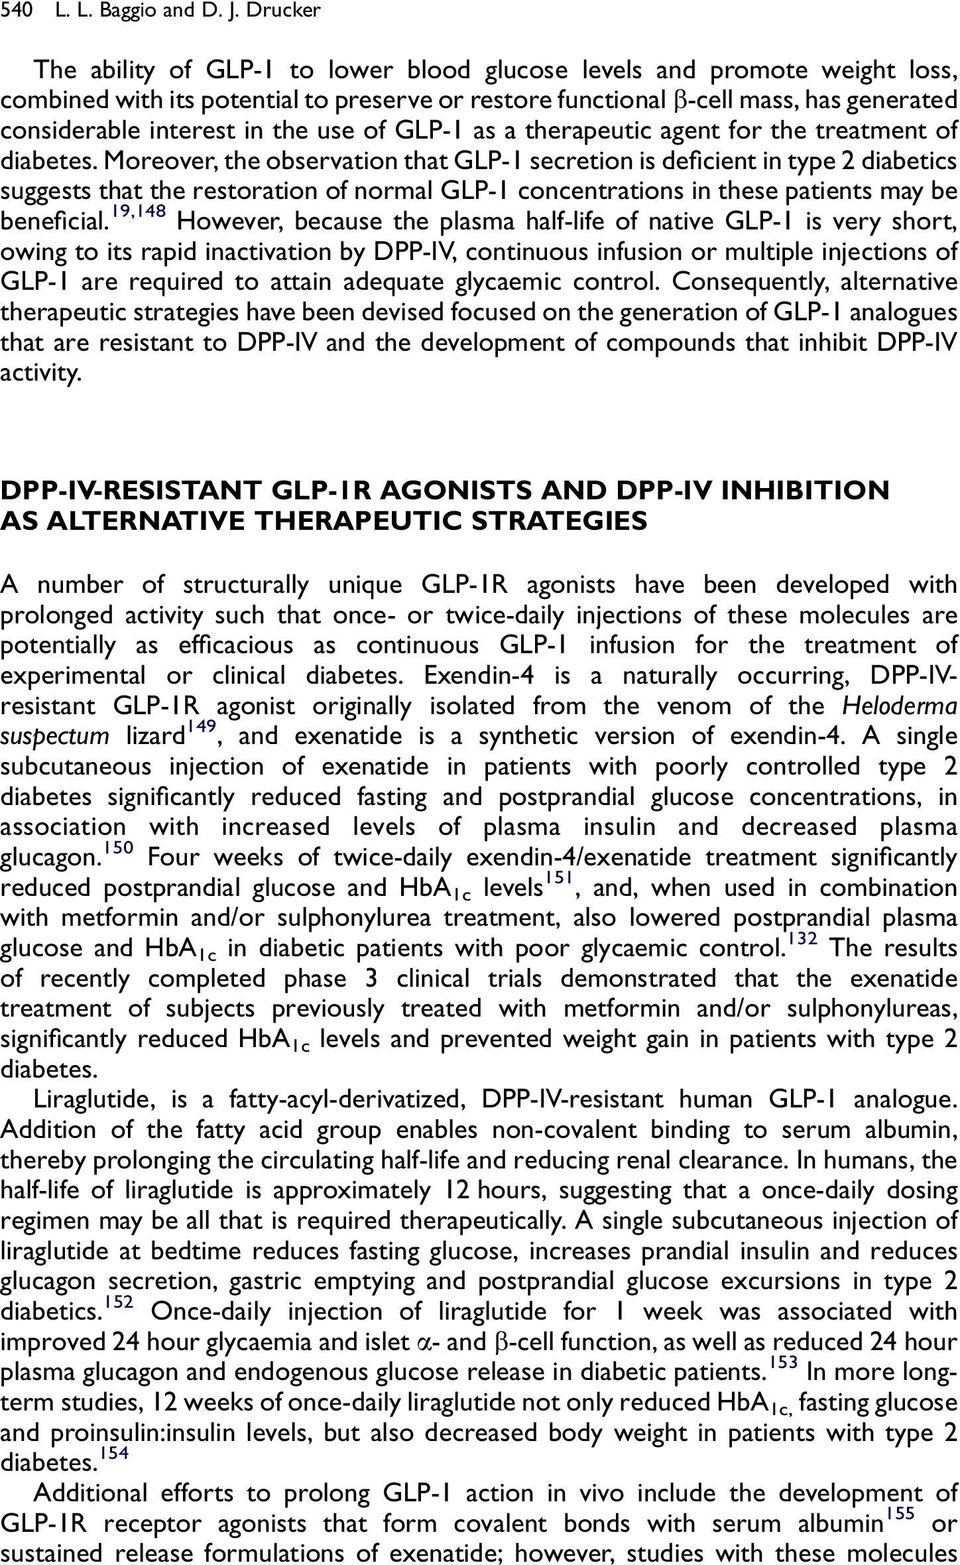 the use of GLP-1 as a therapeutic agent for the treatment of diabetes.